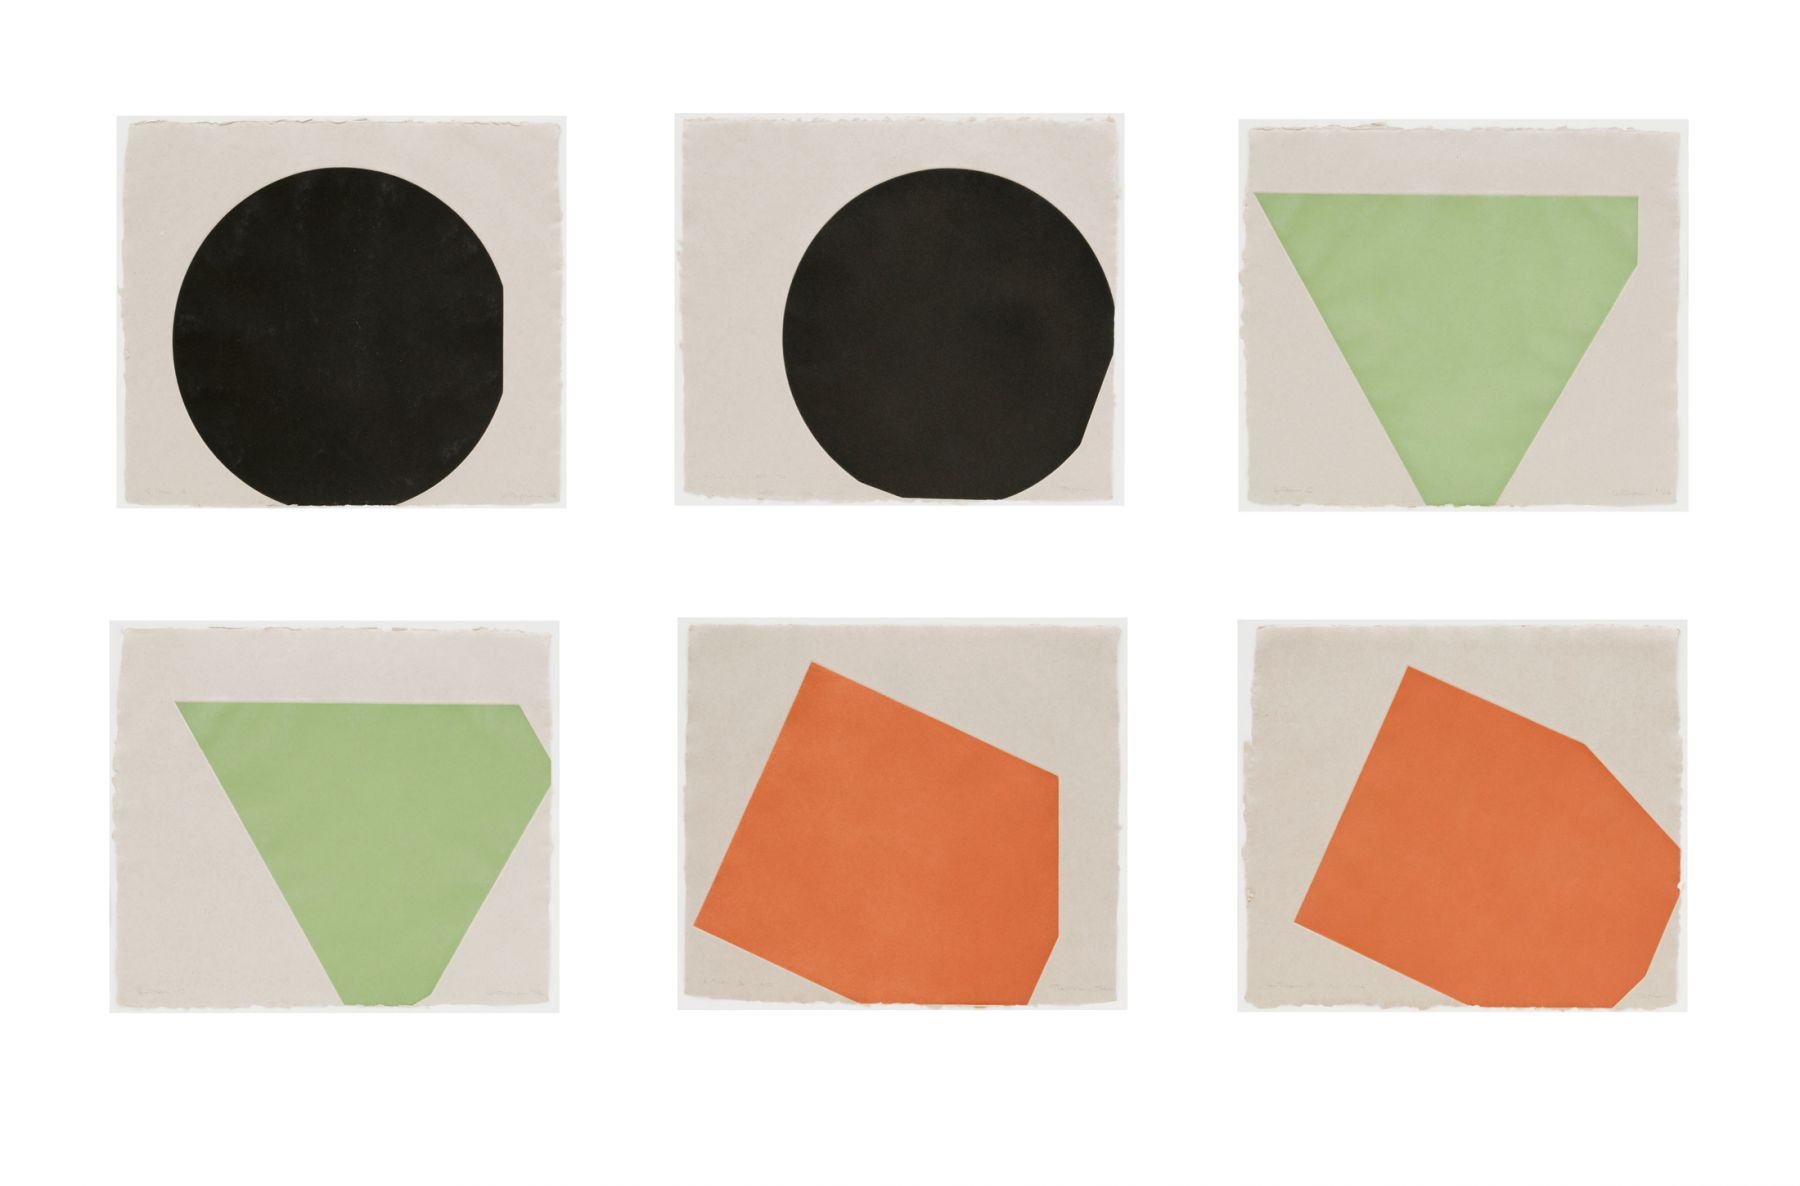 Gary Stephan If - Then, 1974-75 Suite of six aquatints on Handmade paper 19 1⁄2 x 25 1⁄2 in. / 49.5 x 64.8 cm. each Edition of 50